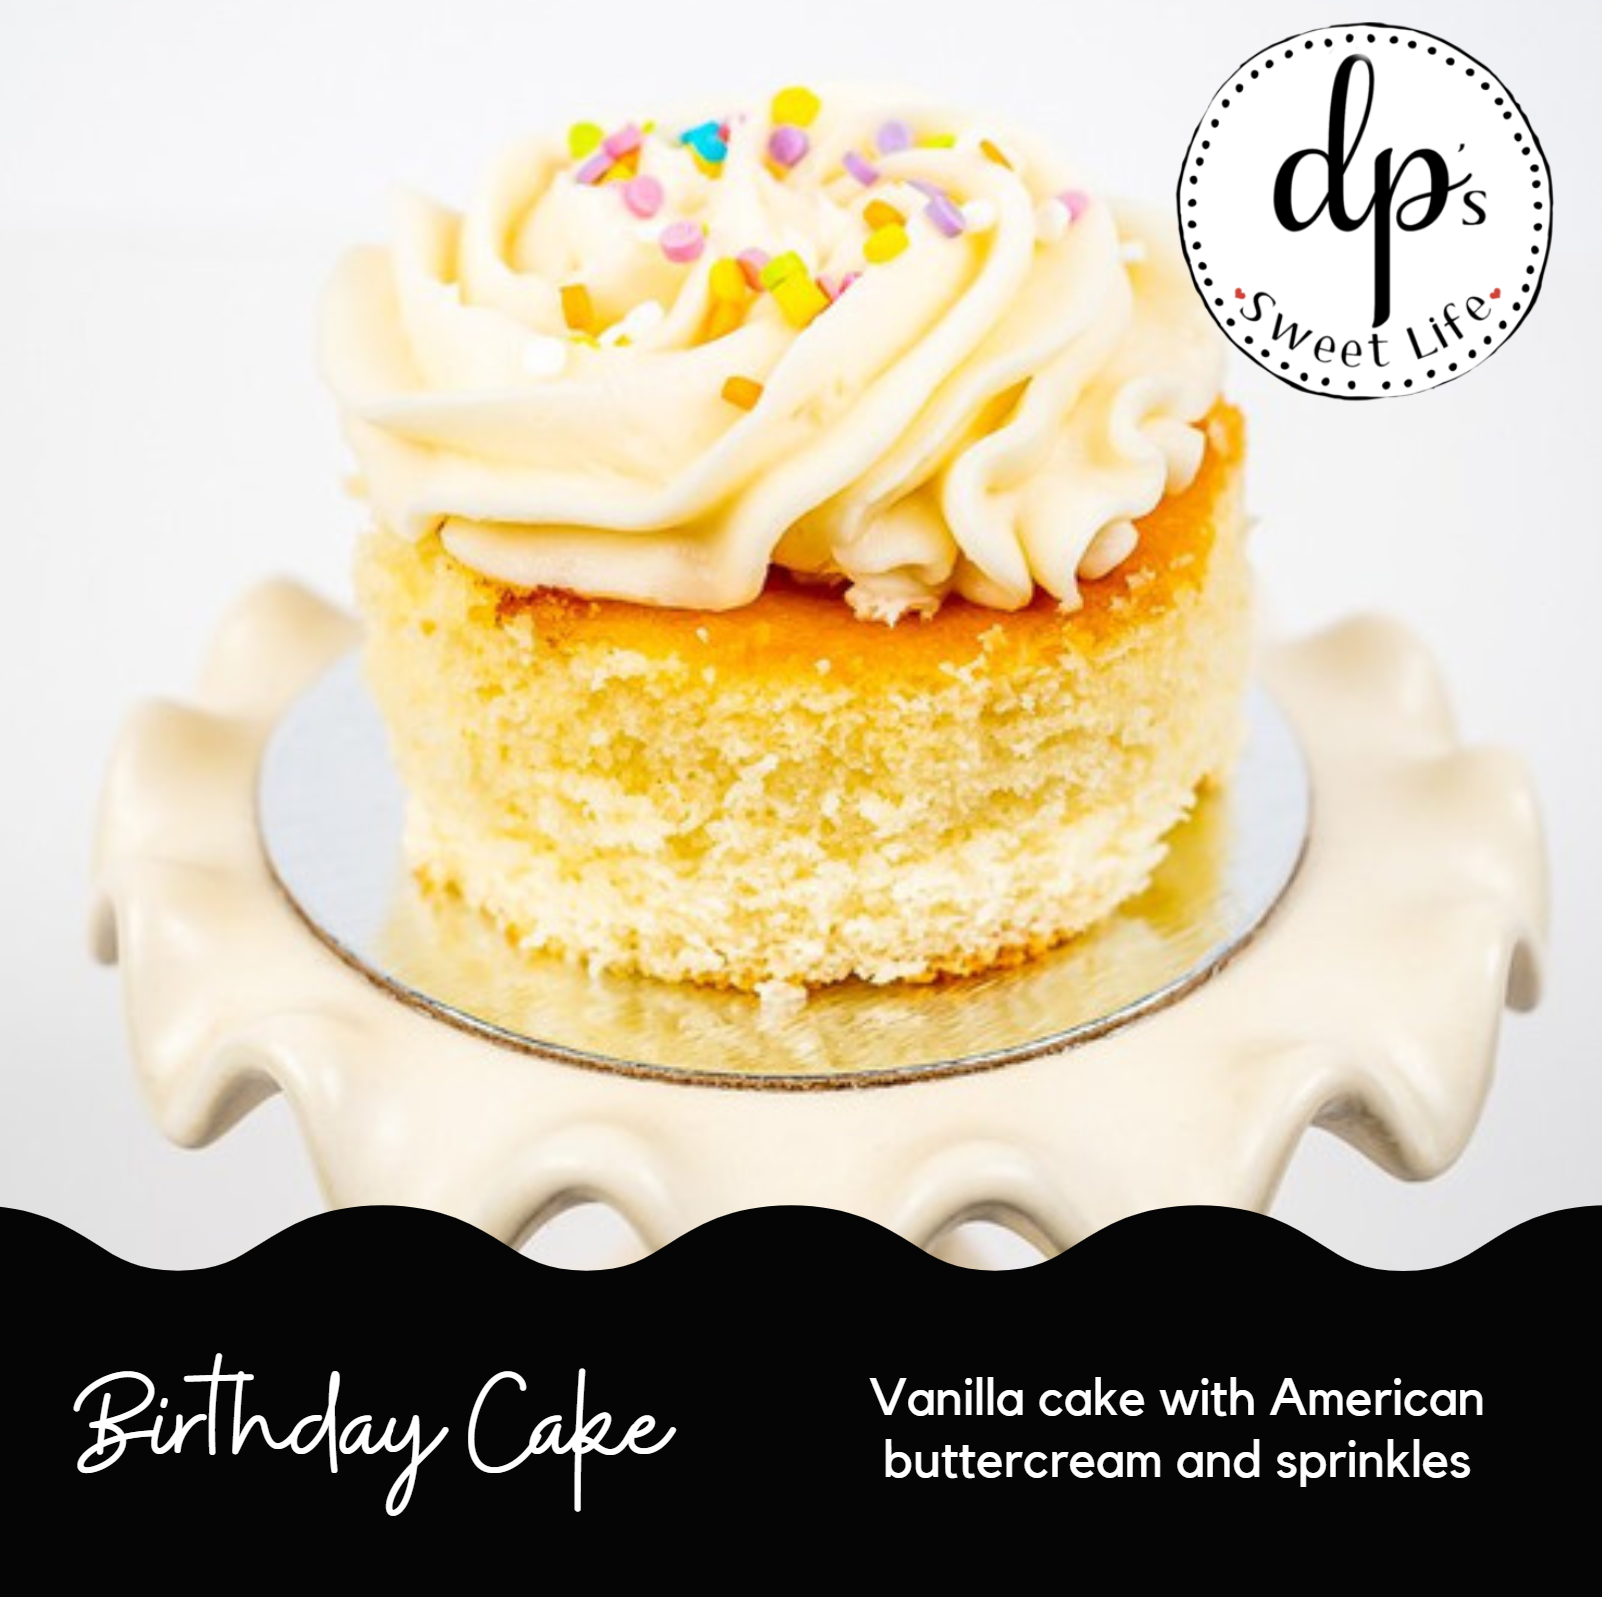 Birthday Cake - Cupped Cake